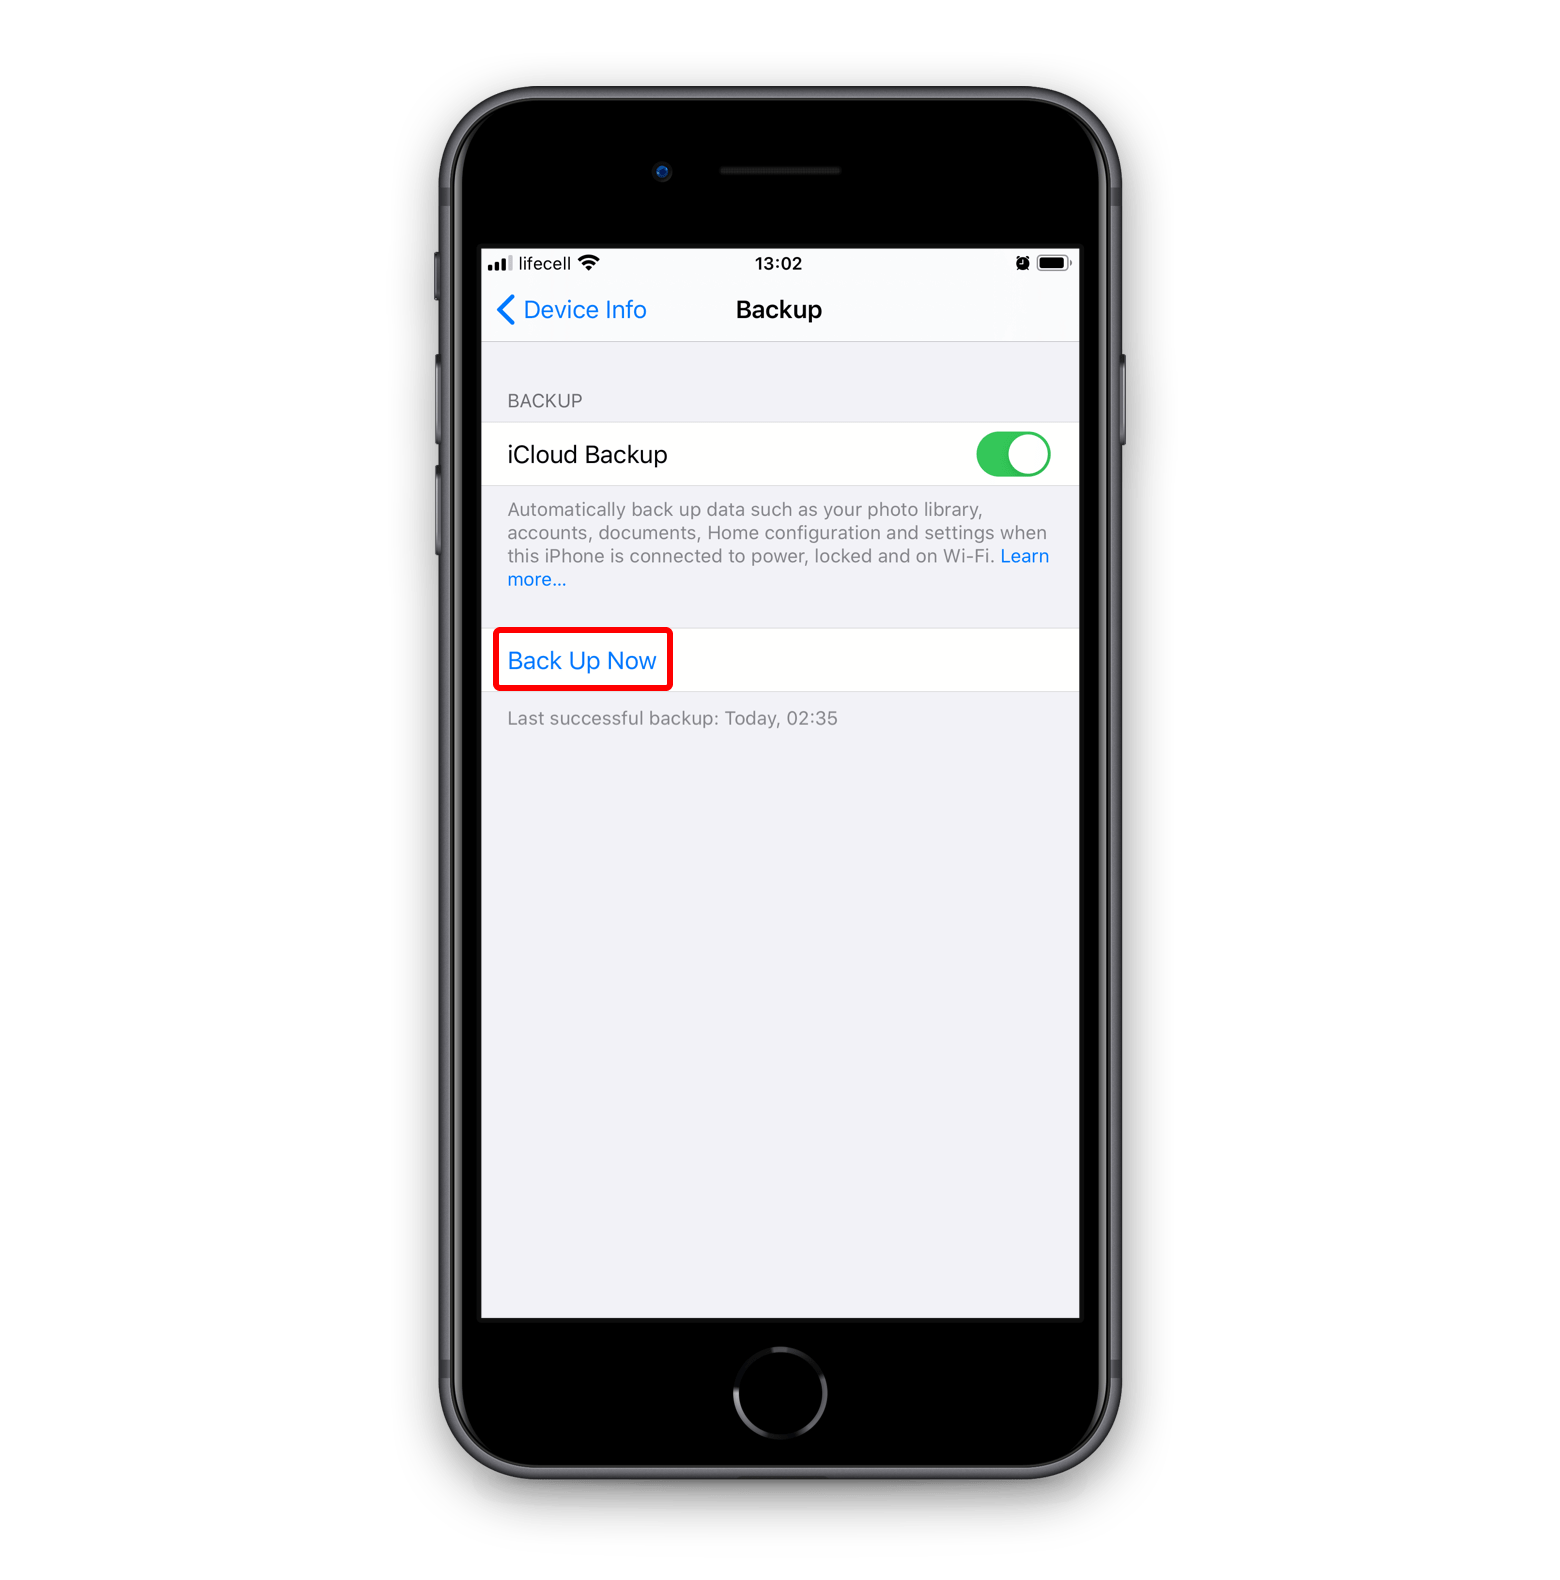 A complete guide on how to factory reset iPhone - Setapp